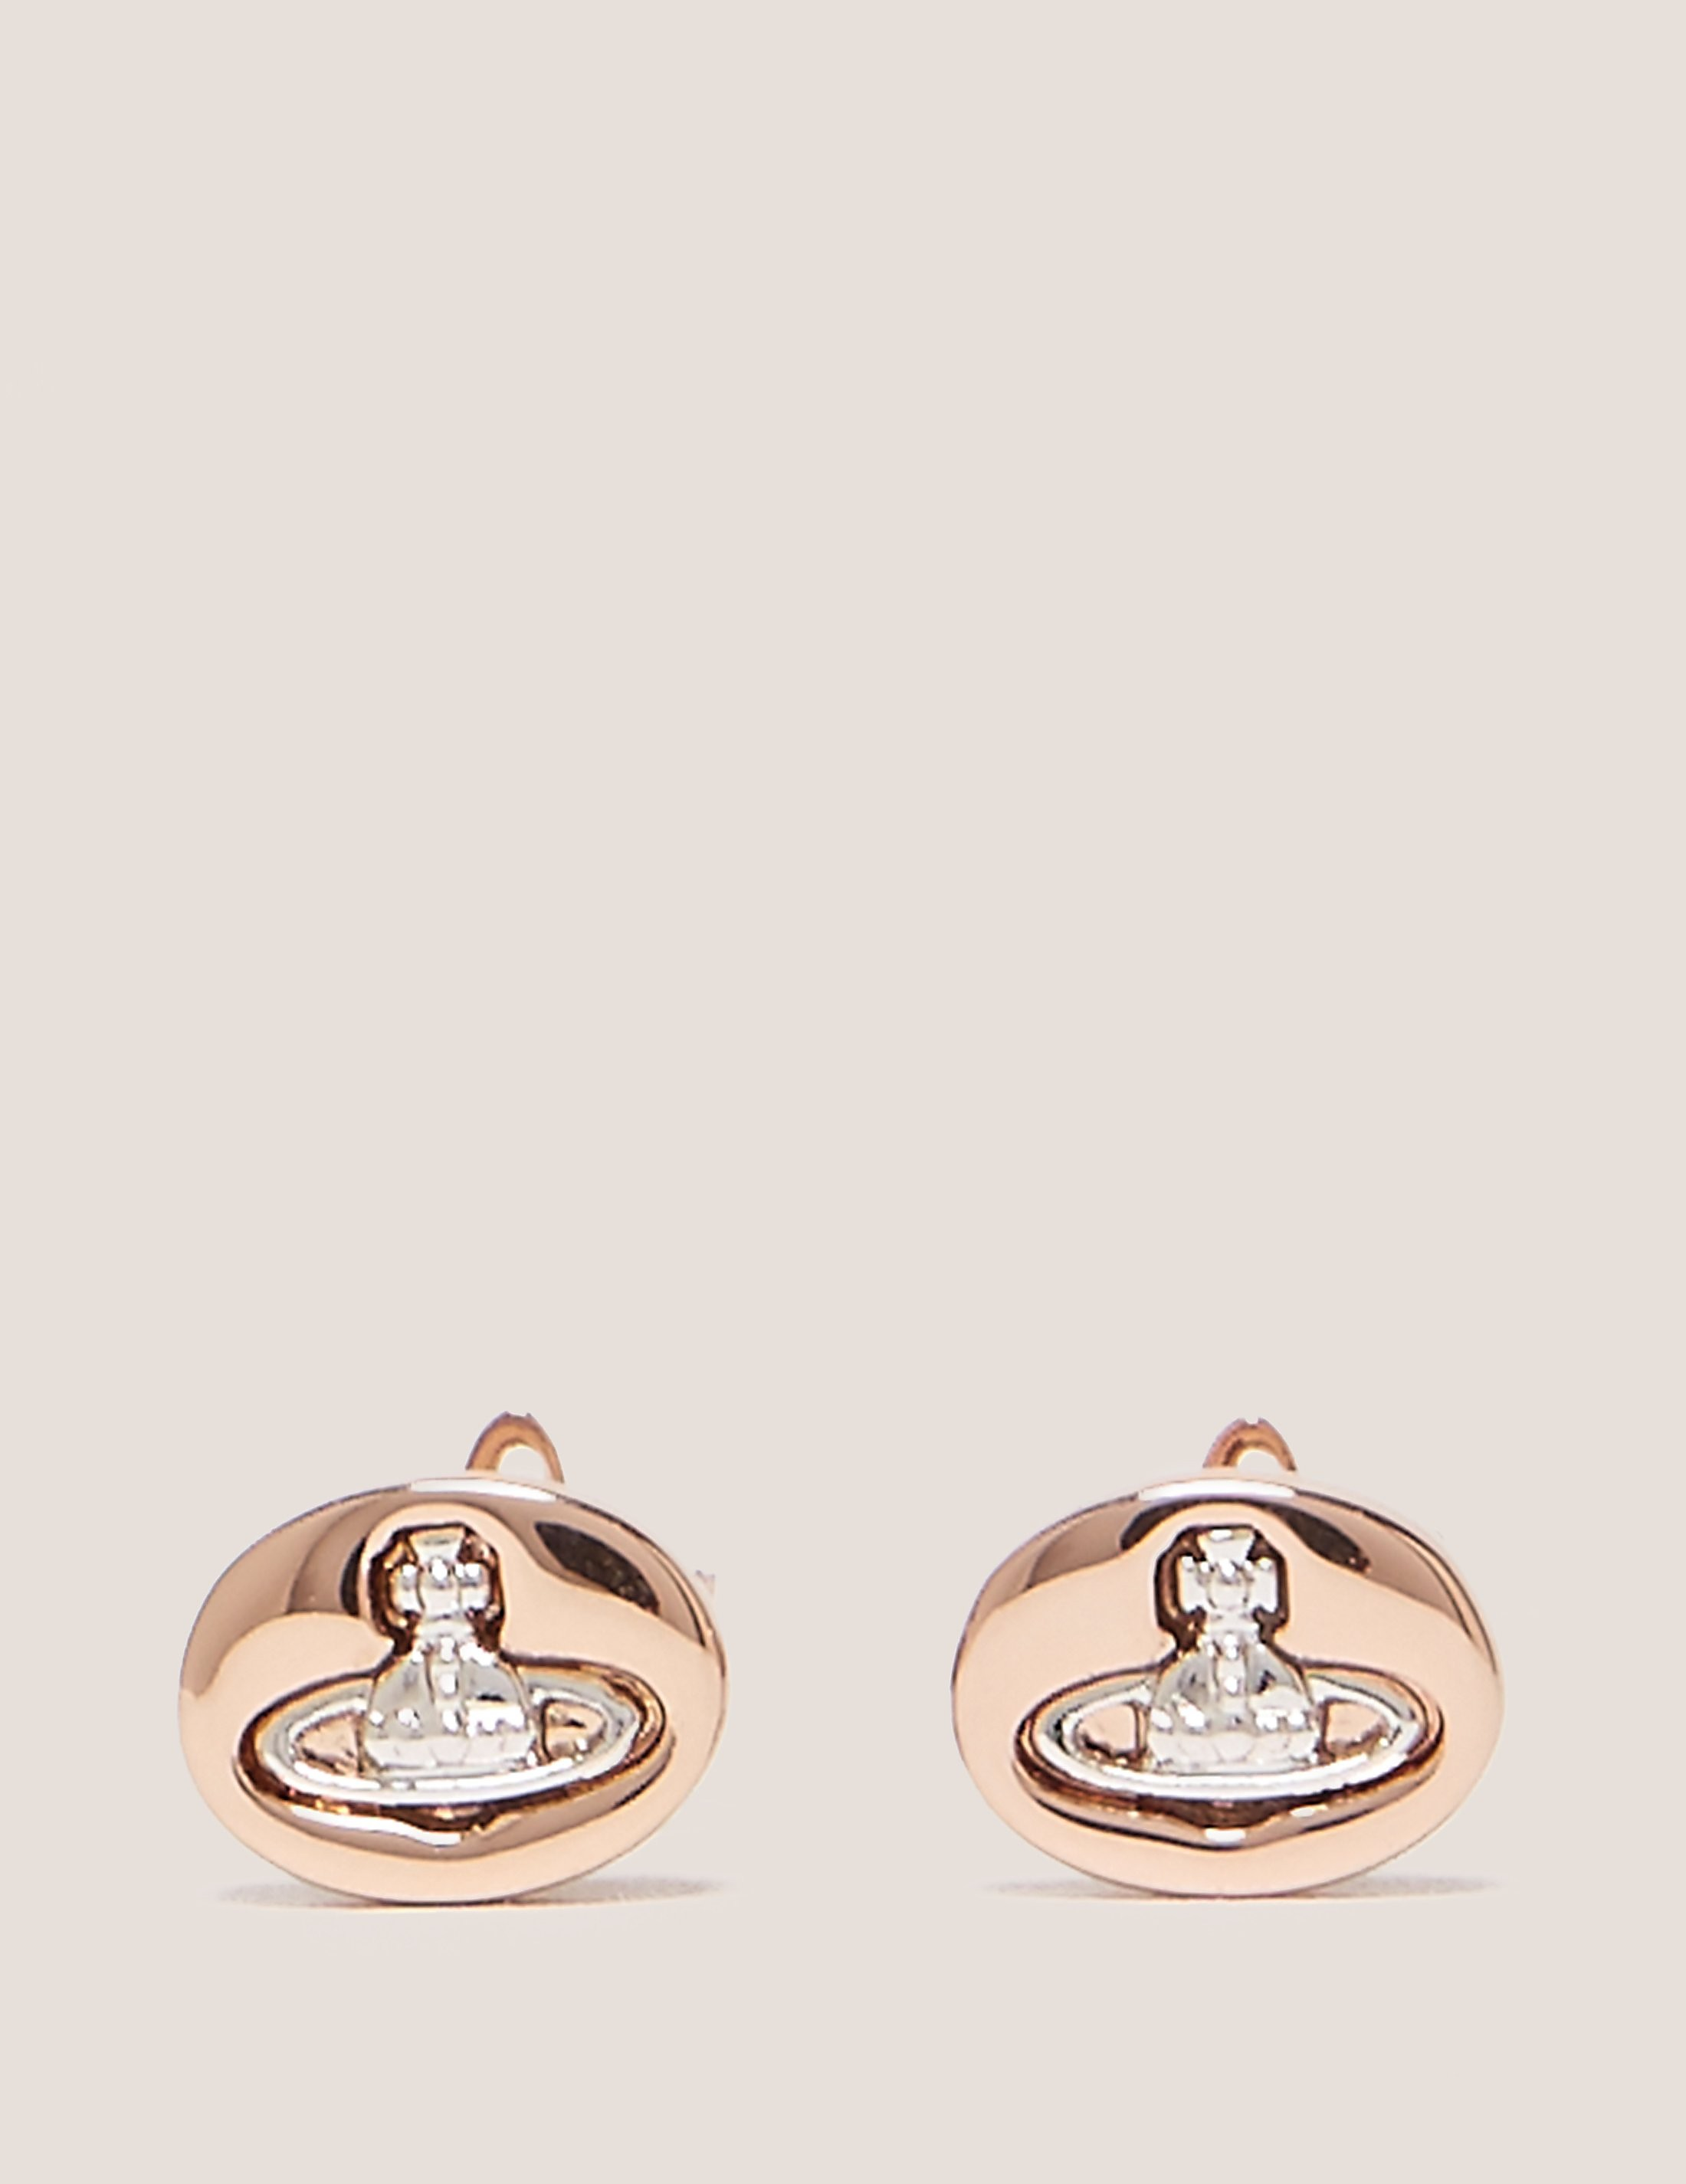 Vivienne Westwood Embossed Earrings